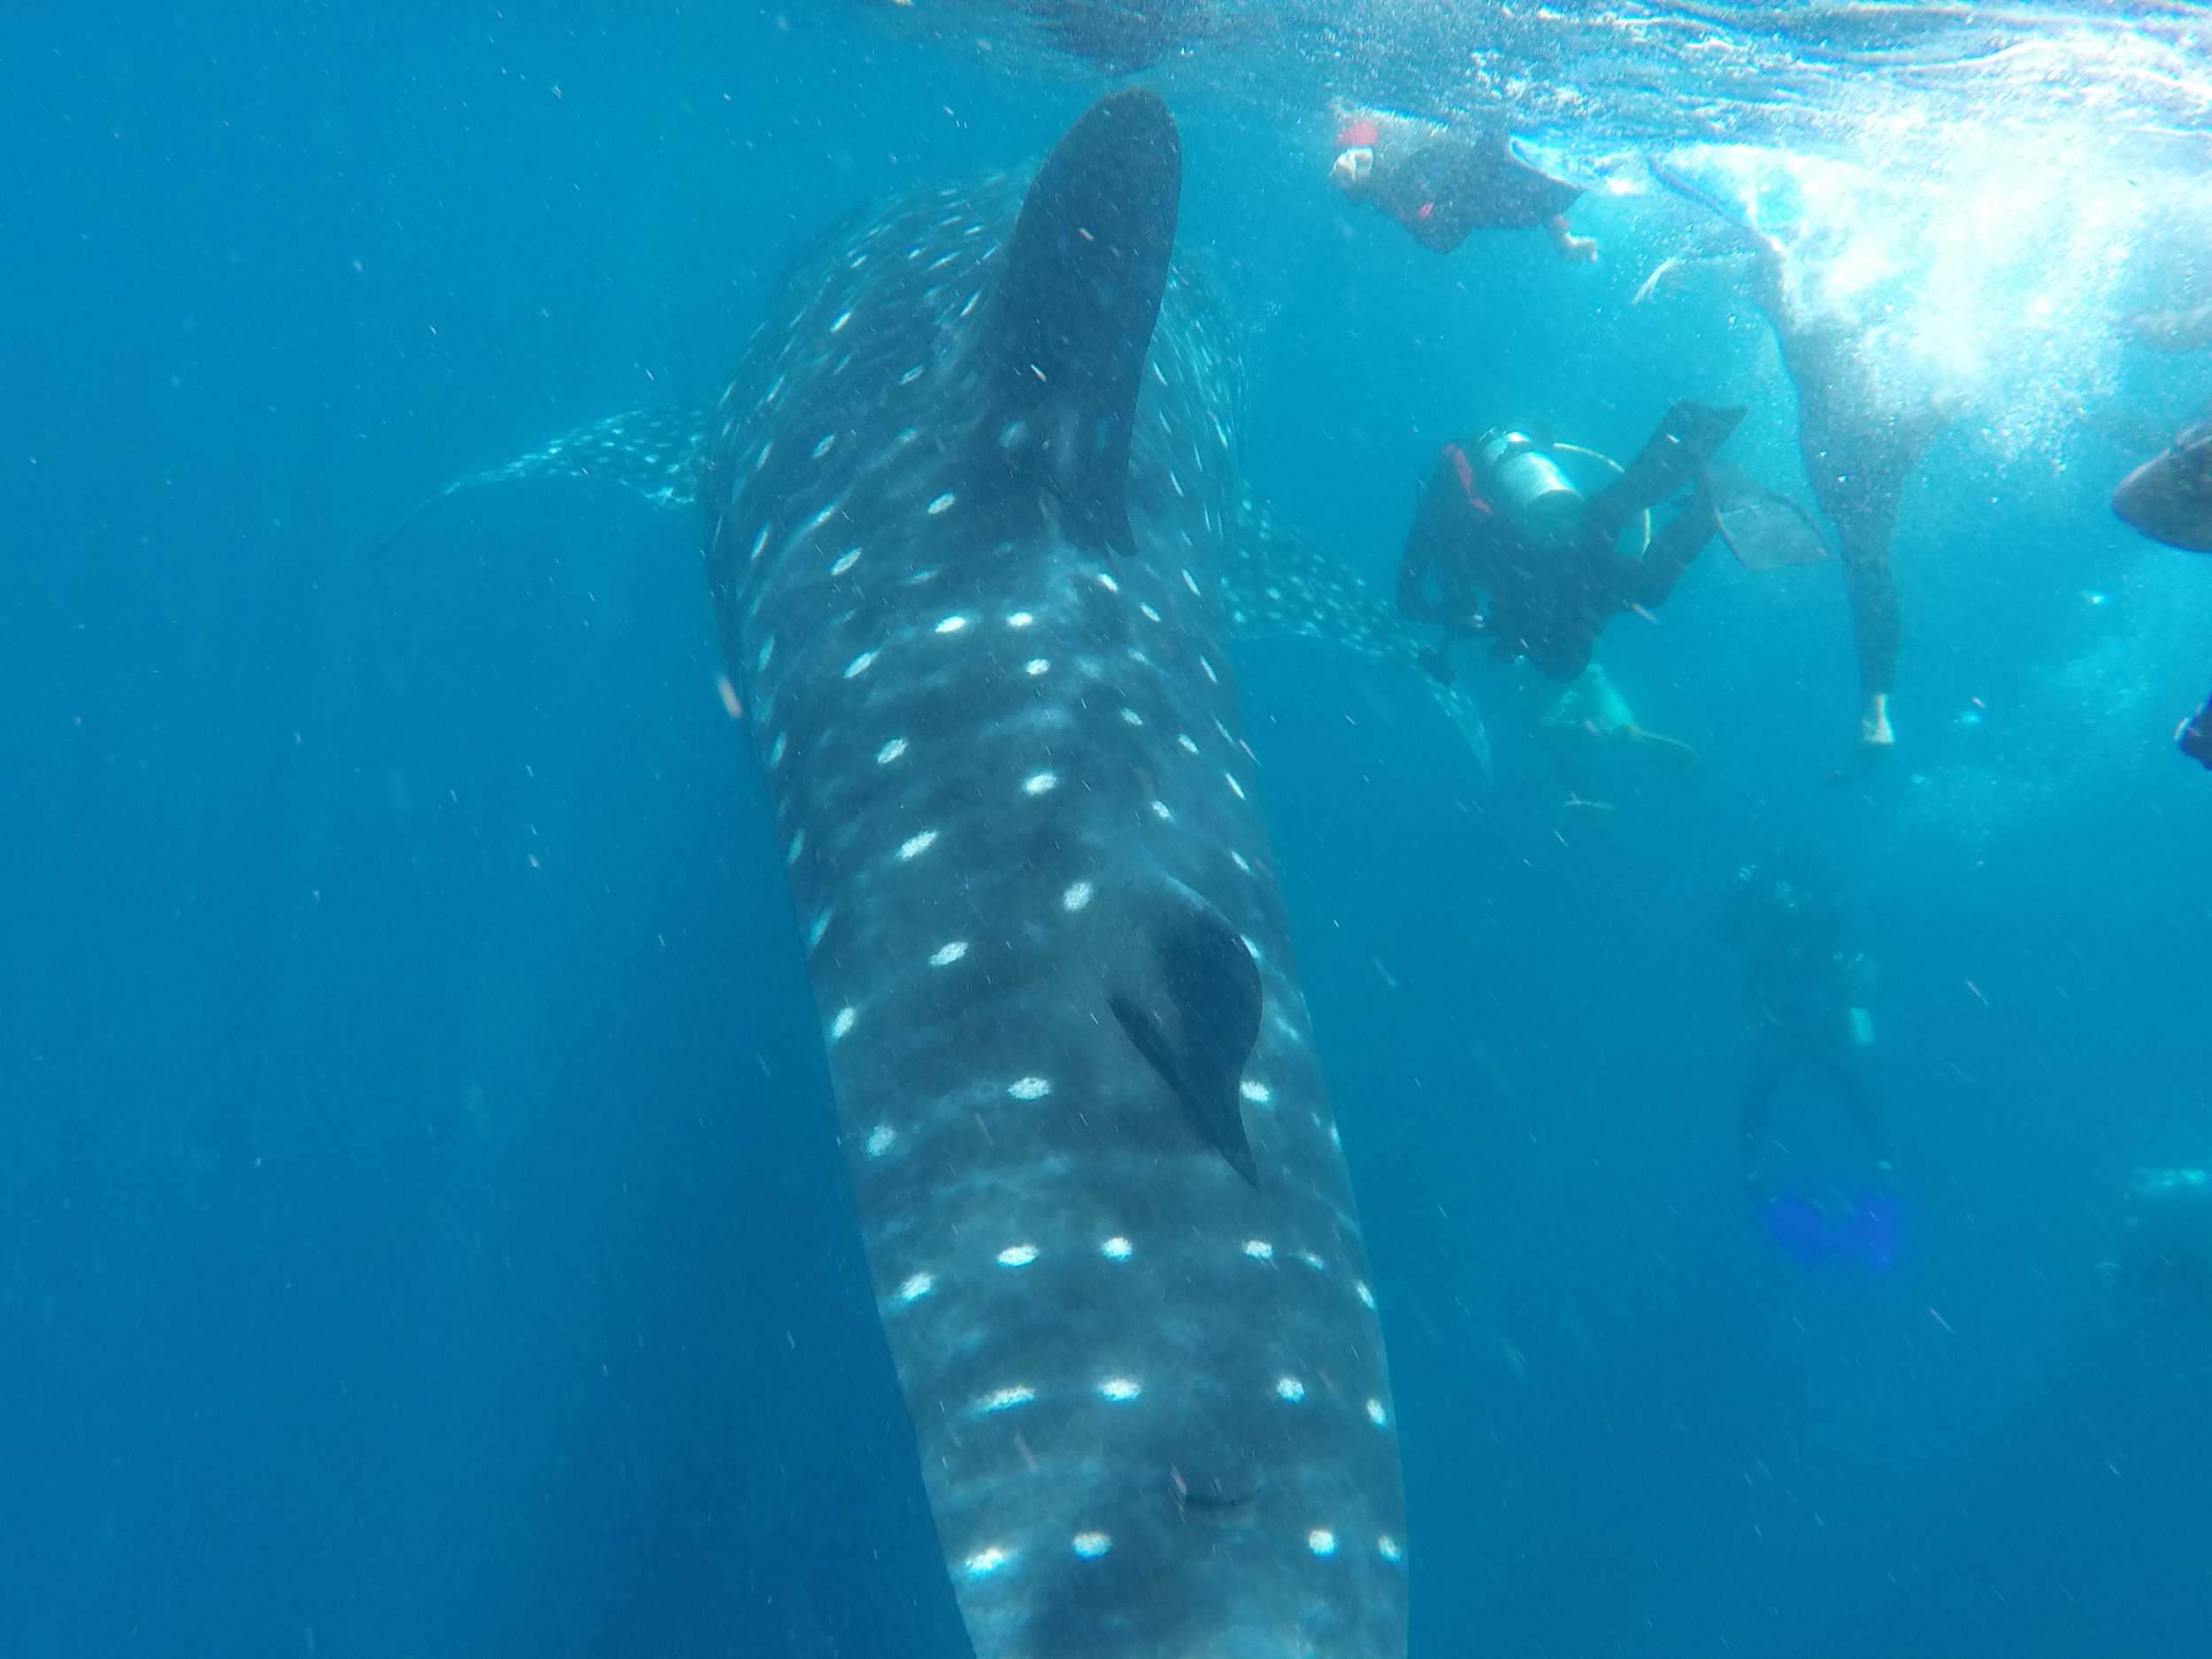 Following the whale shark